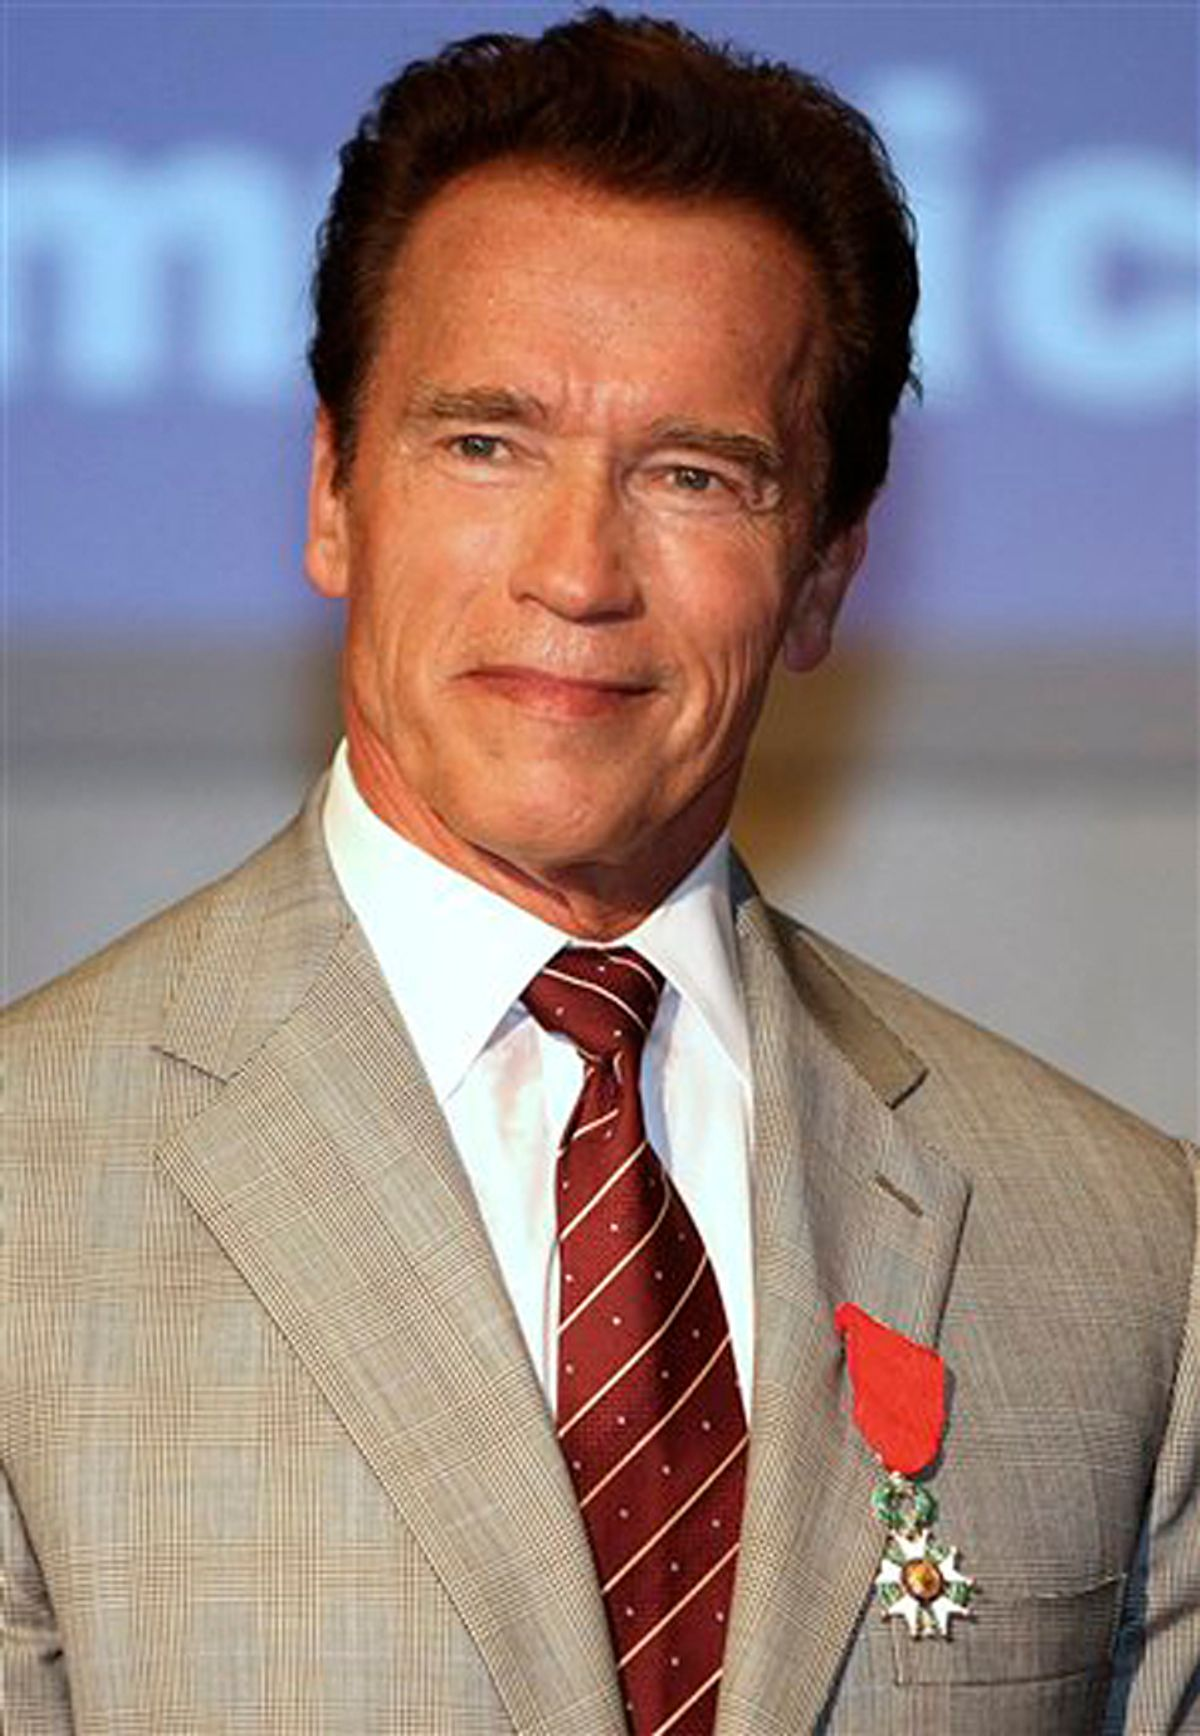 """Austrian-American, actor and former California Governor Arnold Schwarzenegger, poses after receiving the insignia of Chevalier in the Order of the Legion of Honor  during the MIPTV (International Television Programme Market), Monday, April 4, 2011, in Cannes, southern France. Arnold Schwarzenegger is back in Cannes for the first time in eight years to unveil a new international television series """"The Governator"""". (AP Photo/Lionel Cironneau) (Lionel Cironneau)"""